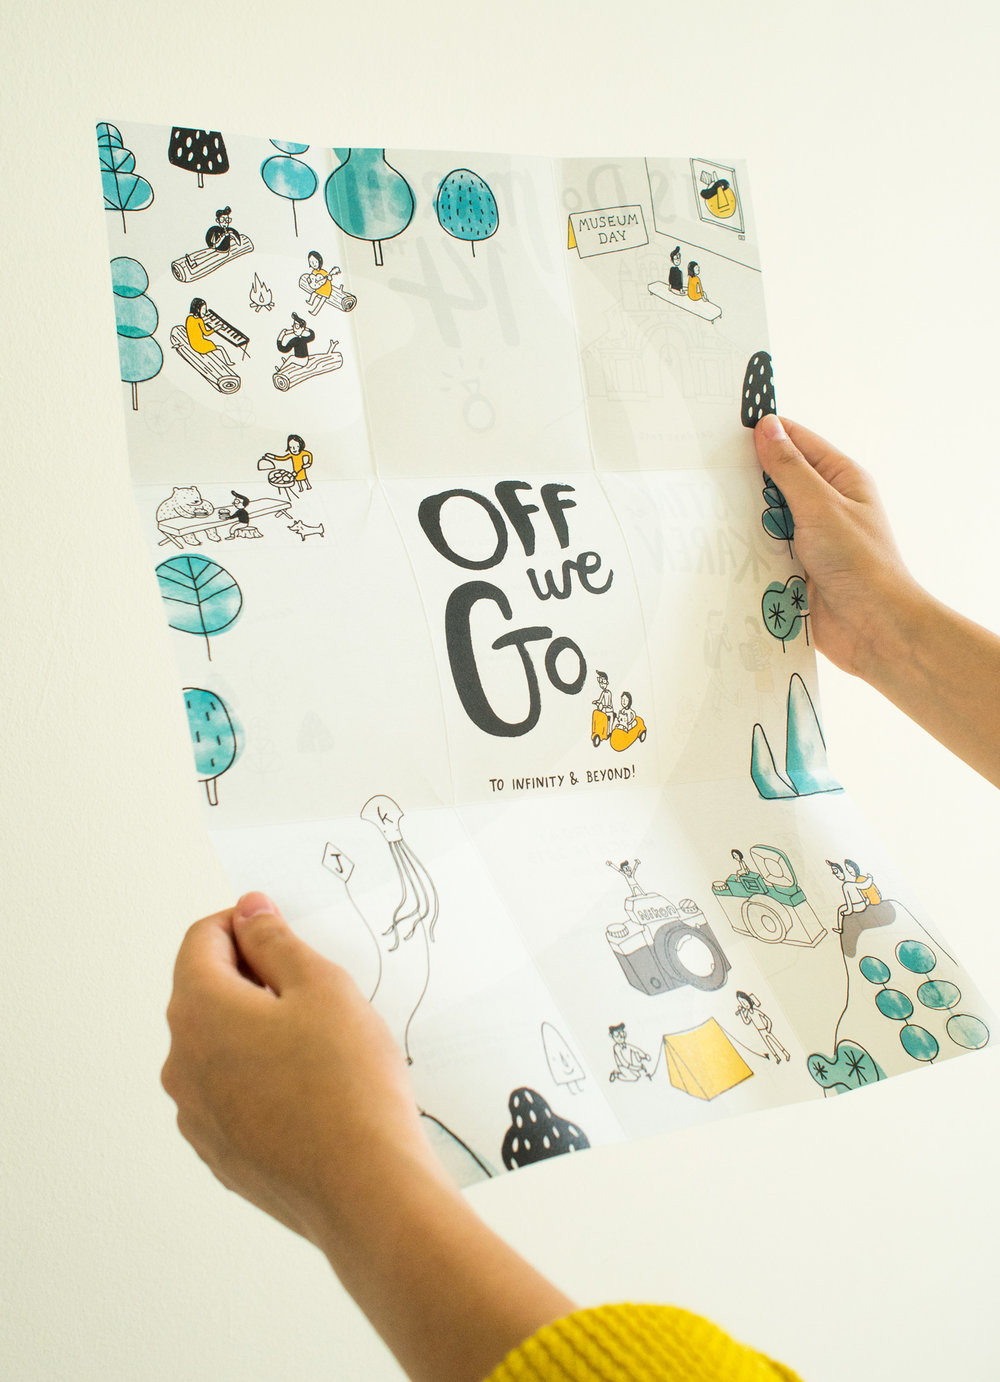 Off-we-go-poster-1.jpg